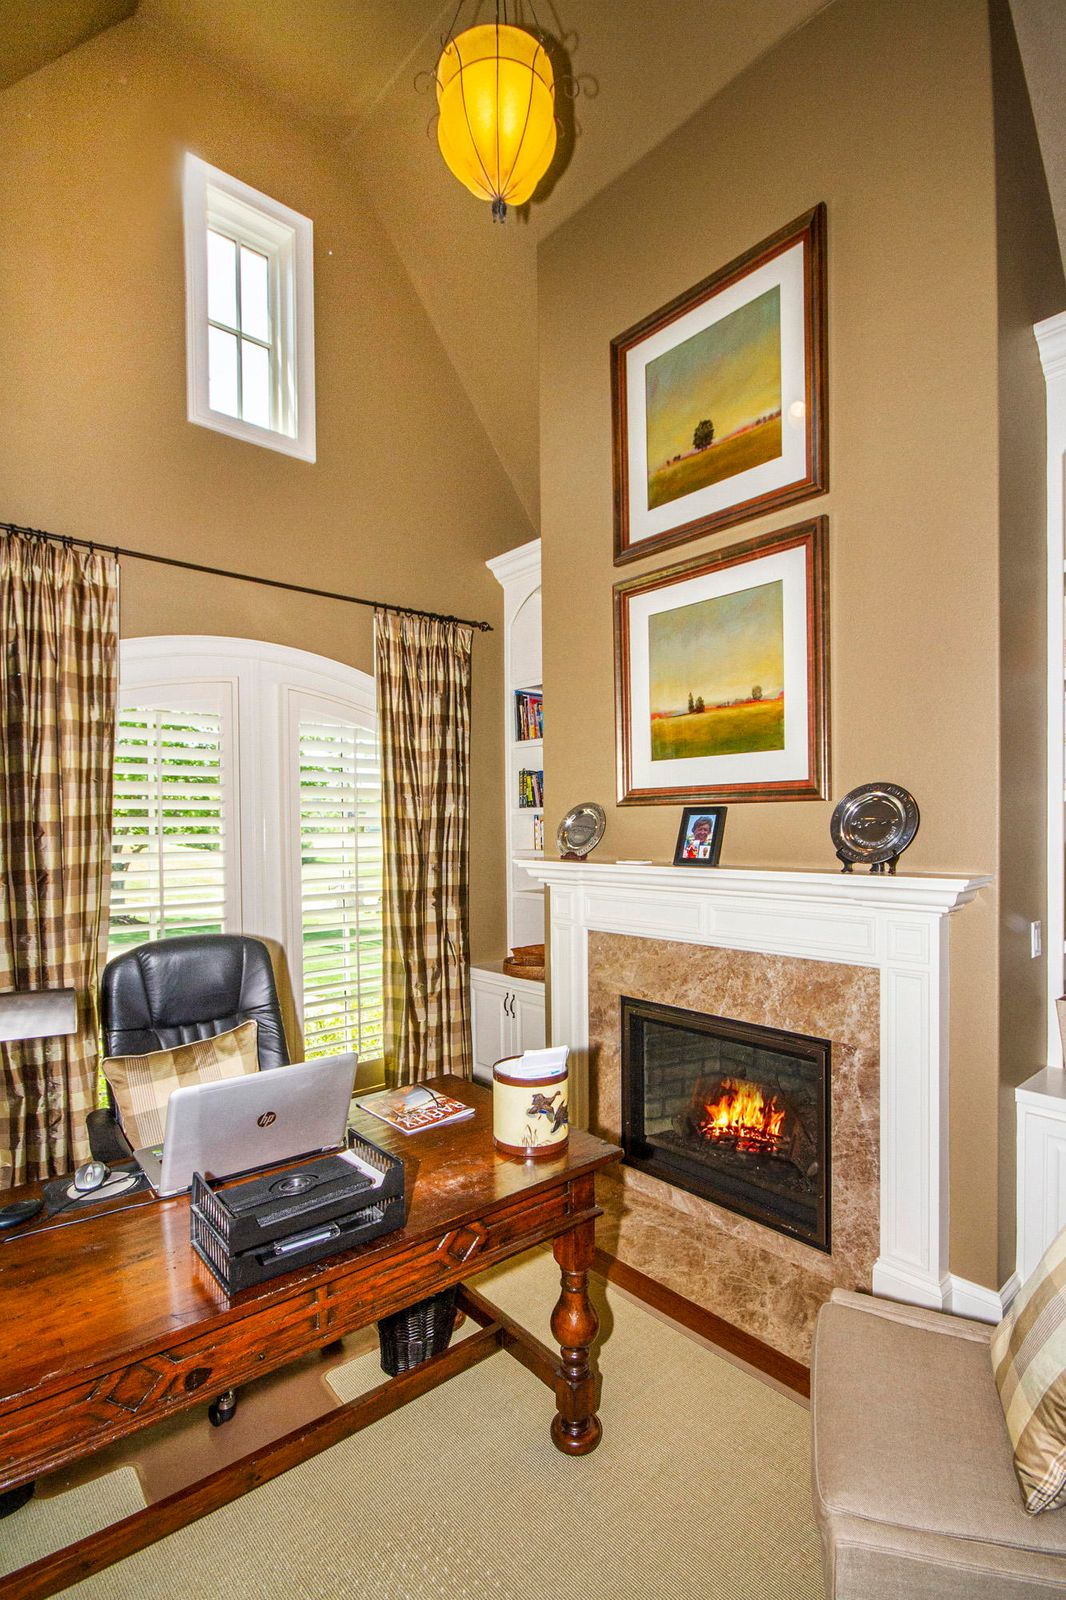 2-Story Office with Fireplace!